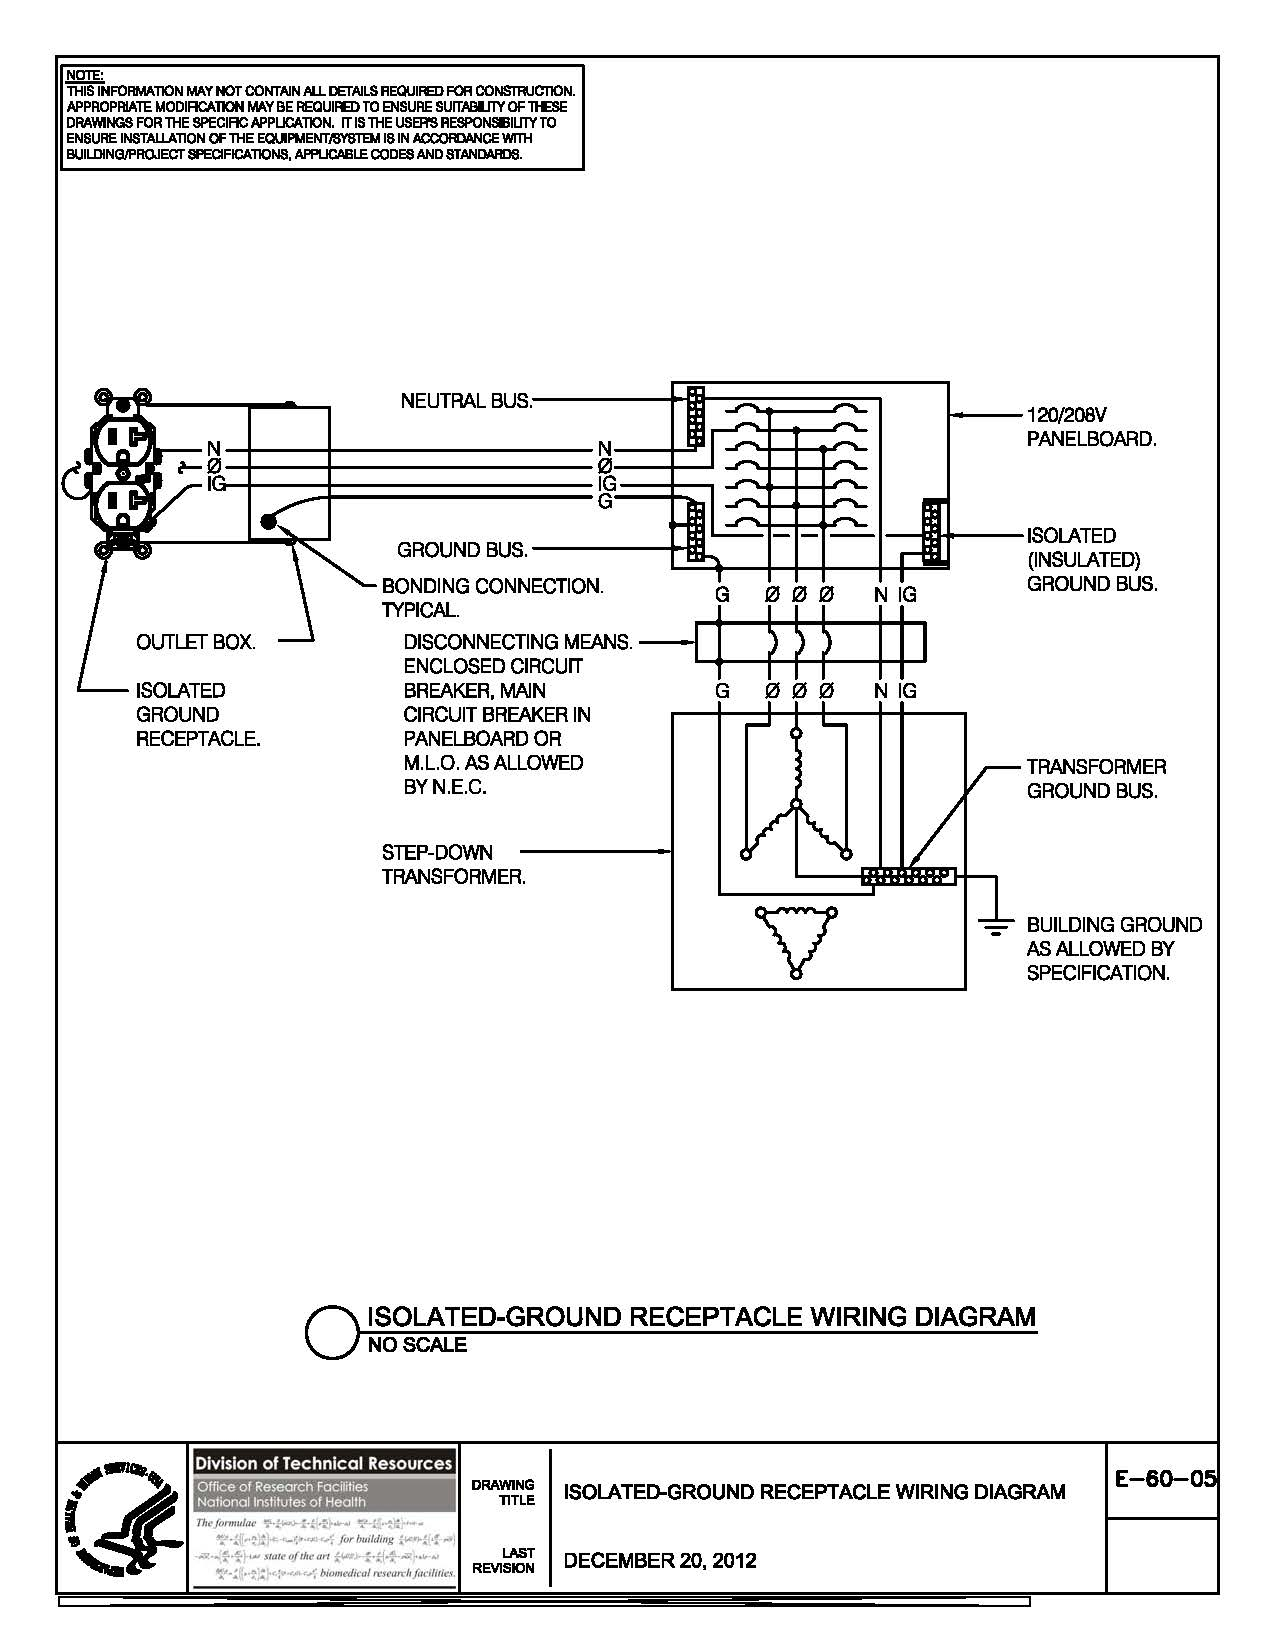 outdoor lamp post wiring diagram Collection-outdoor lamp post wiring diagram Awesome NIH Standard CAD Details 11-j